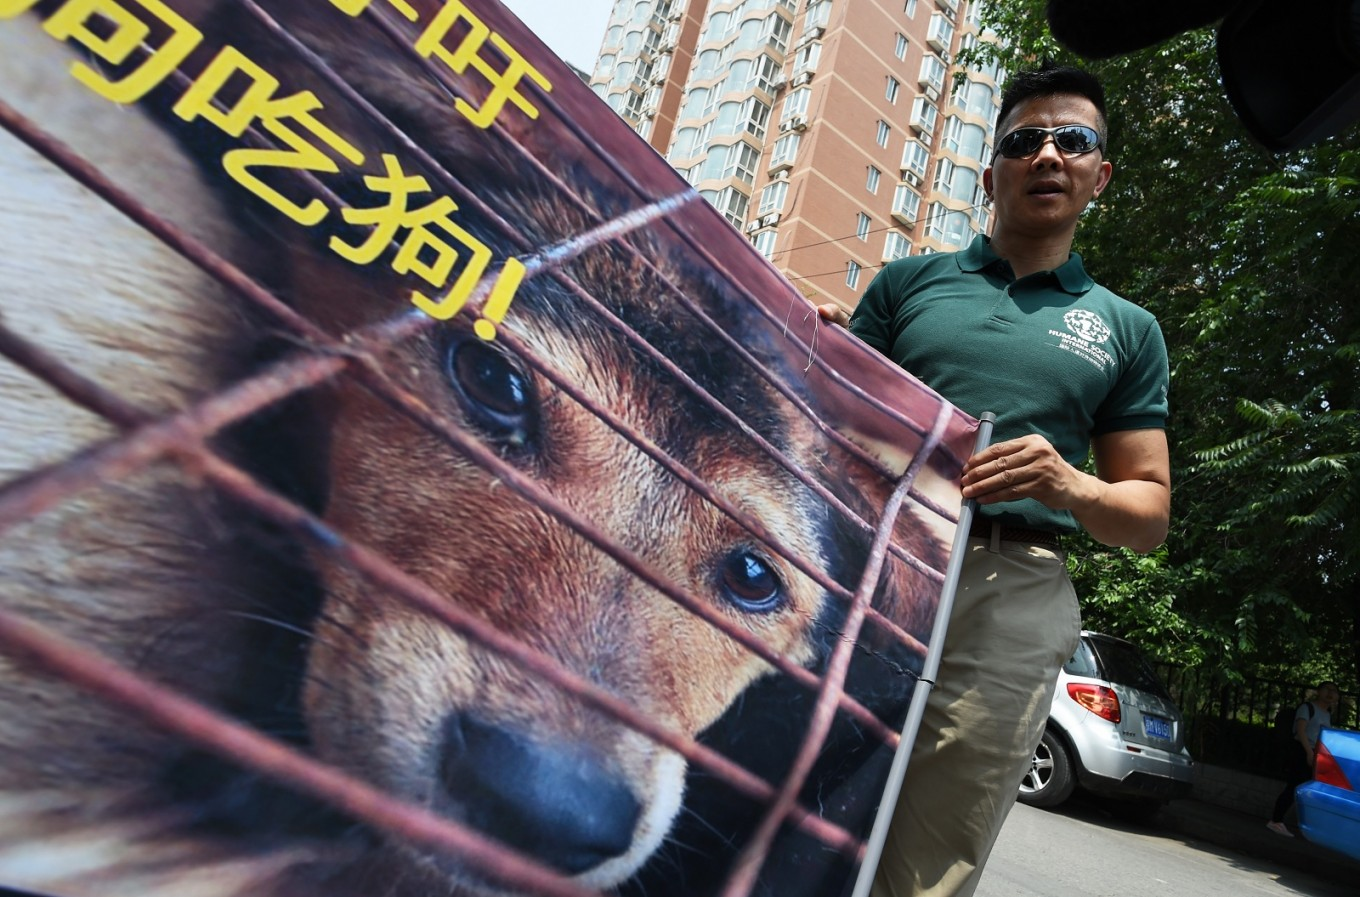 Dog meat farmers protest for survival rights in Seoul